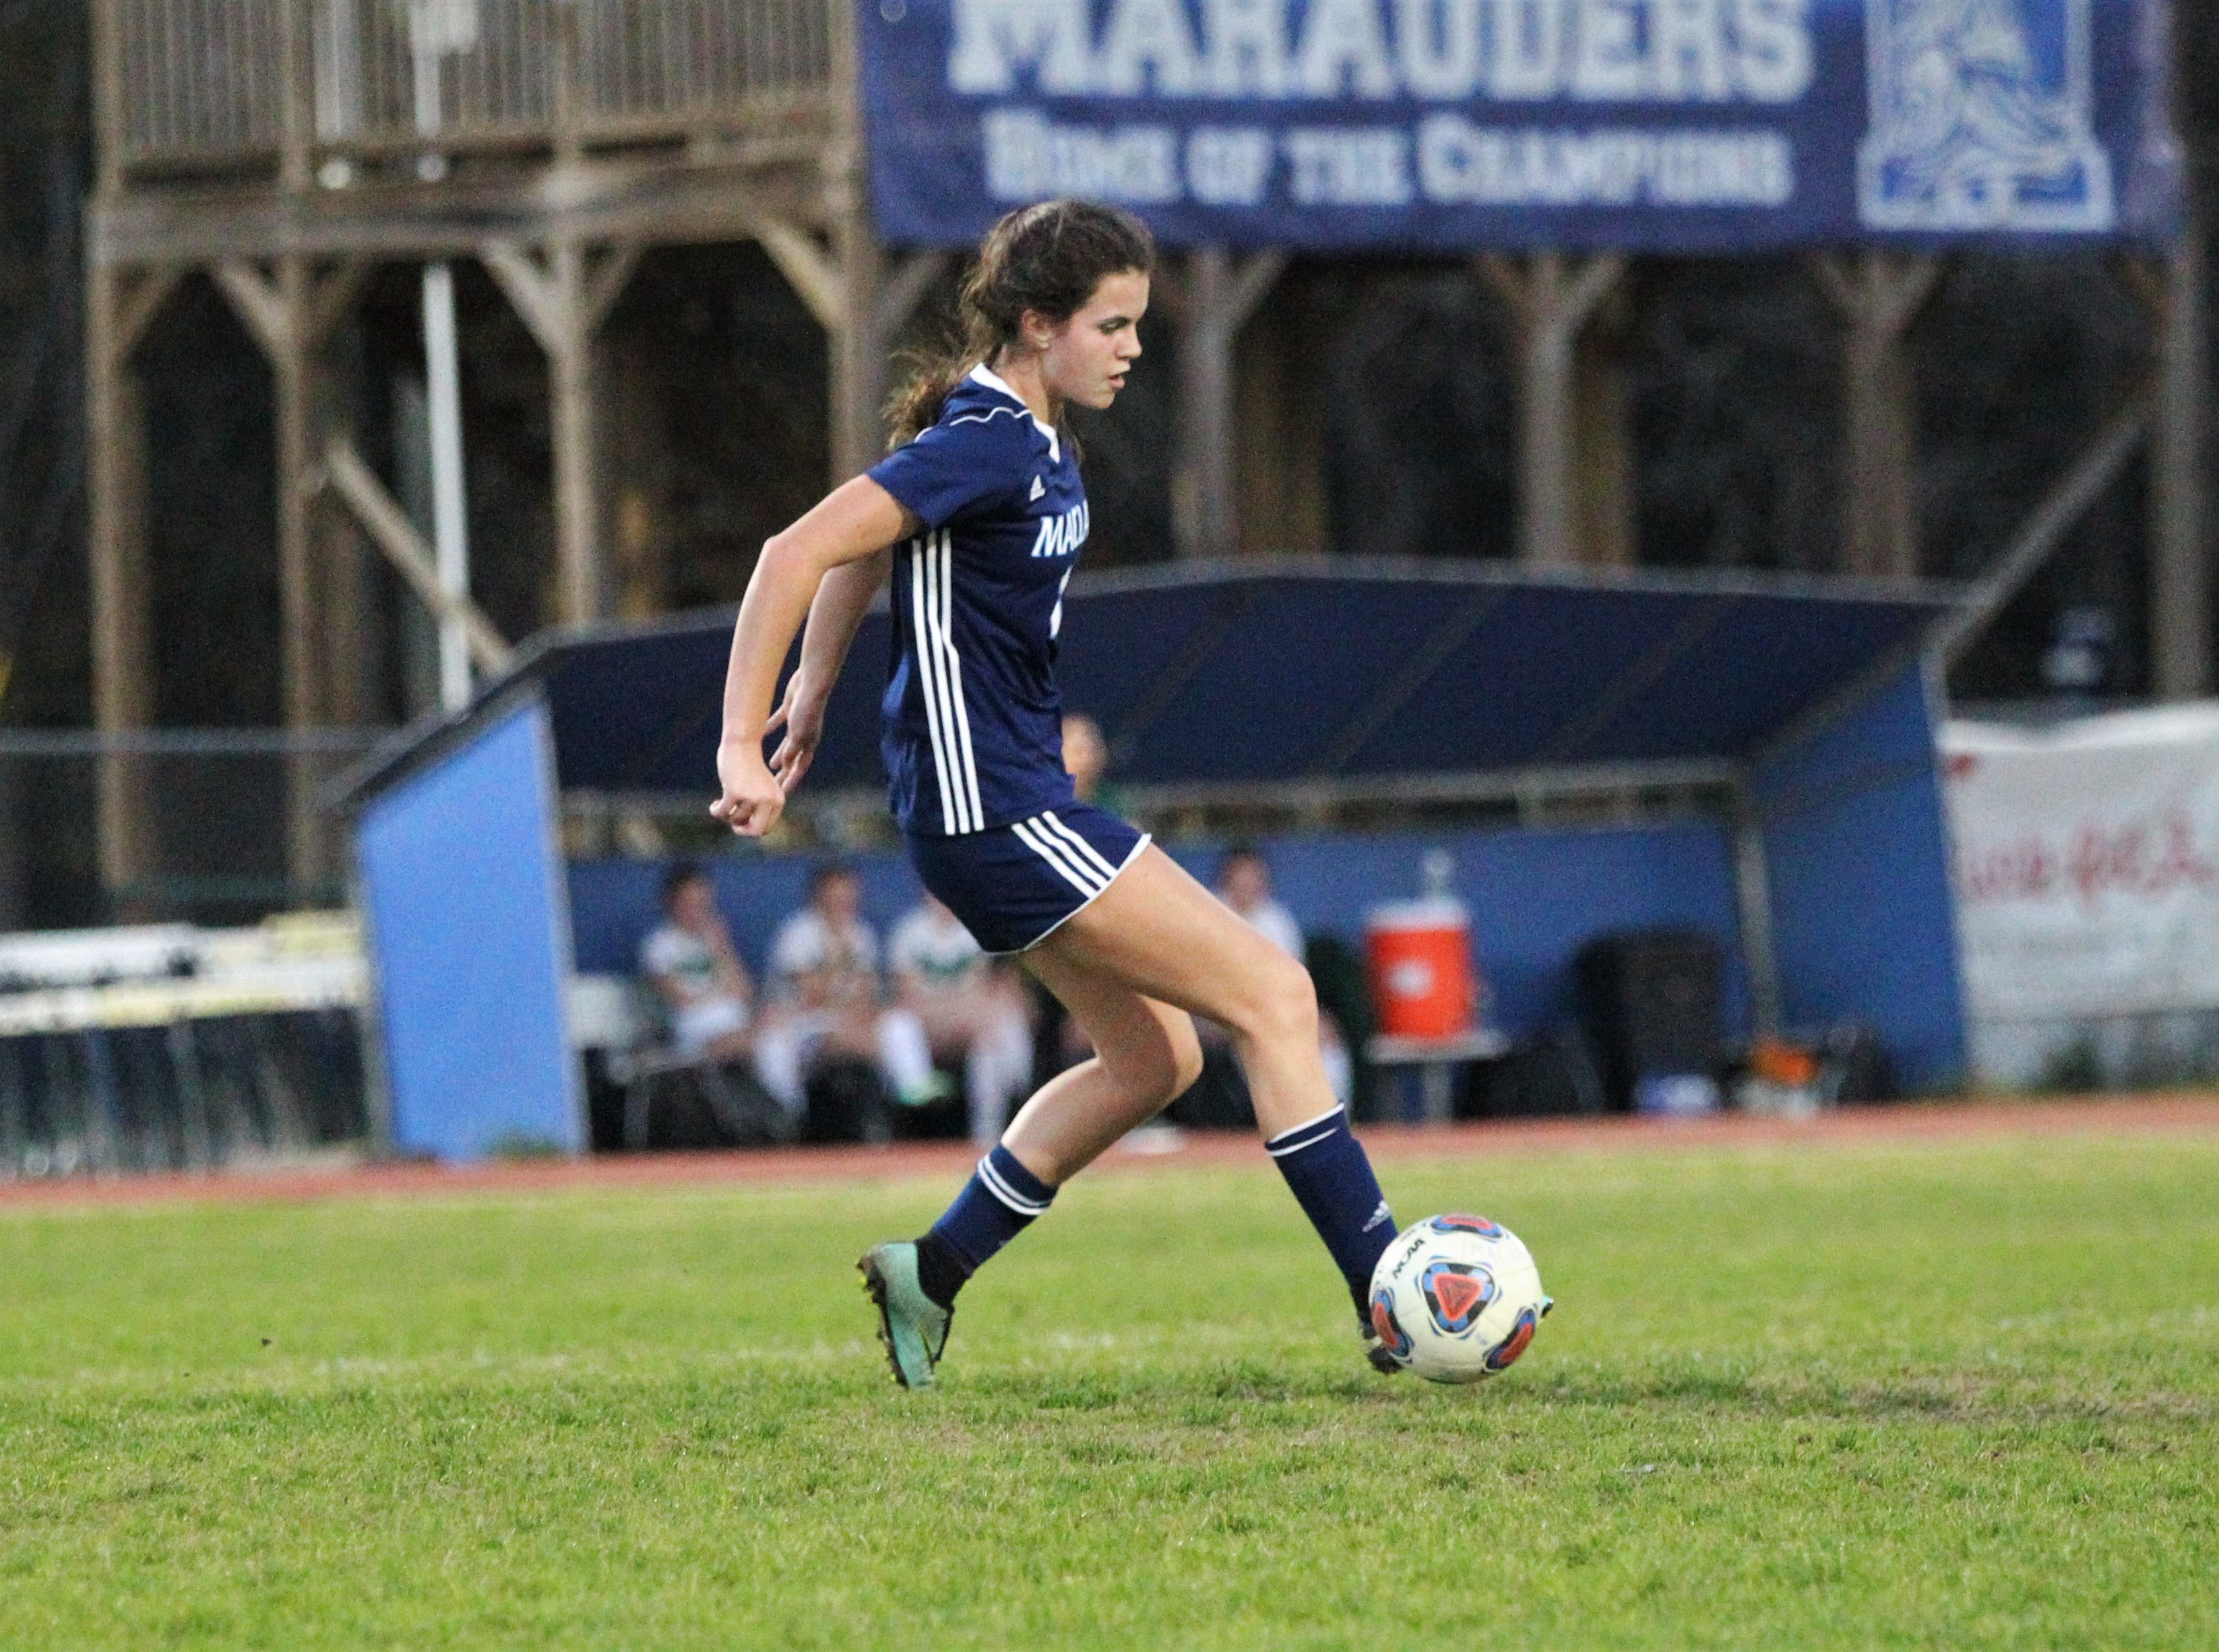 Maclay's Madison Perkins gains possession in the midfield as Maclay's girls soccer team beat St. Joseph Academy 4-0 in a Region 1-1A quarterfinal on Jan. 5, 2019.